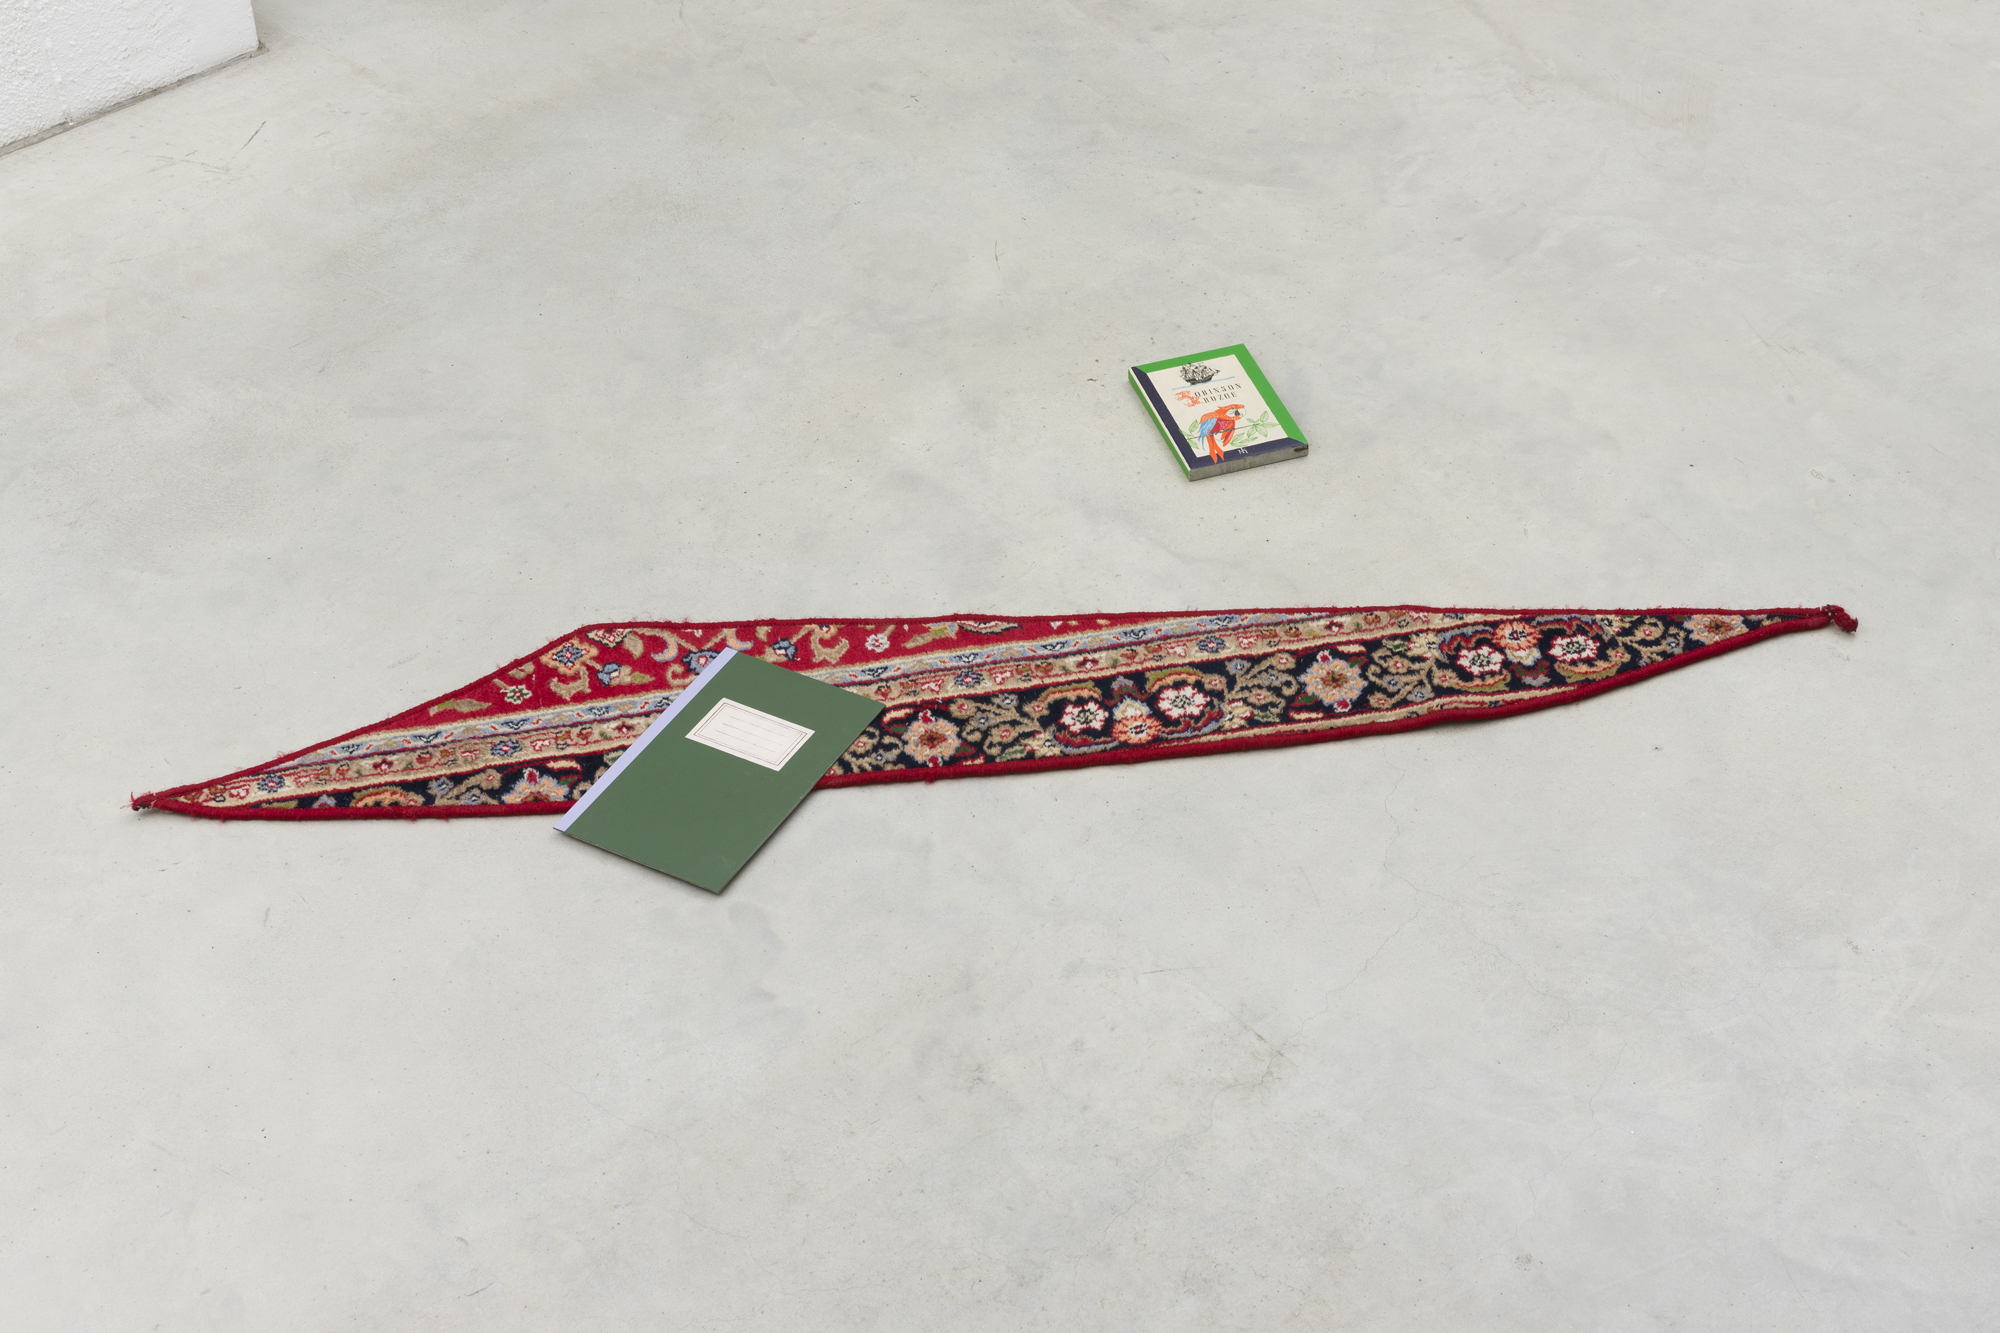 Carpet Piece with Book and Notebook, carpet, thread, acrylic on steel, variable dimensions, 2014